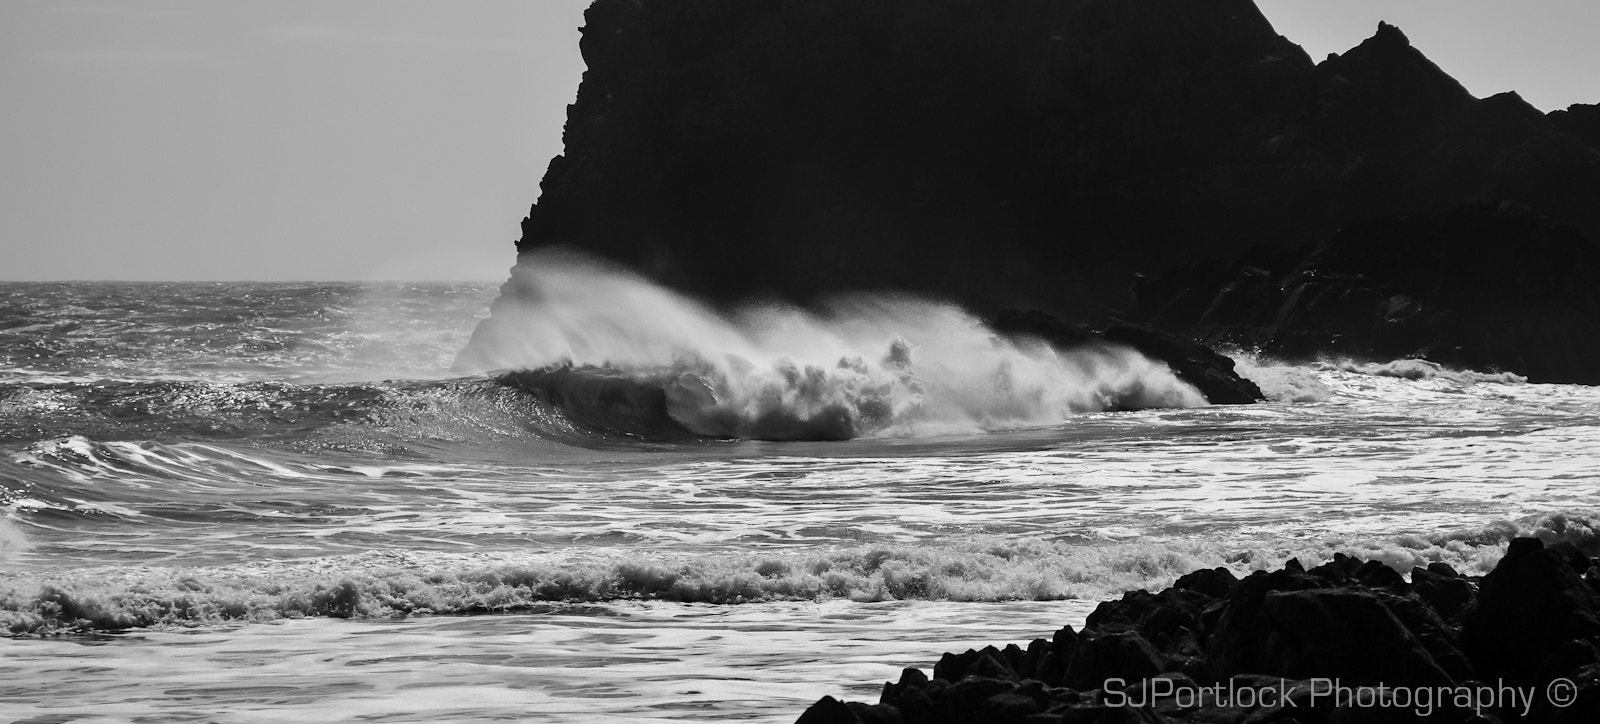 Photograph Surfs Up!  by Stephen Portlock on 500px